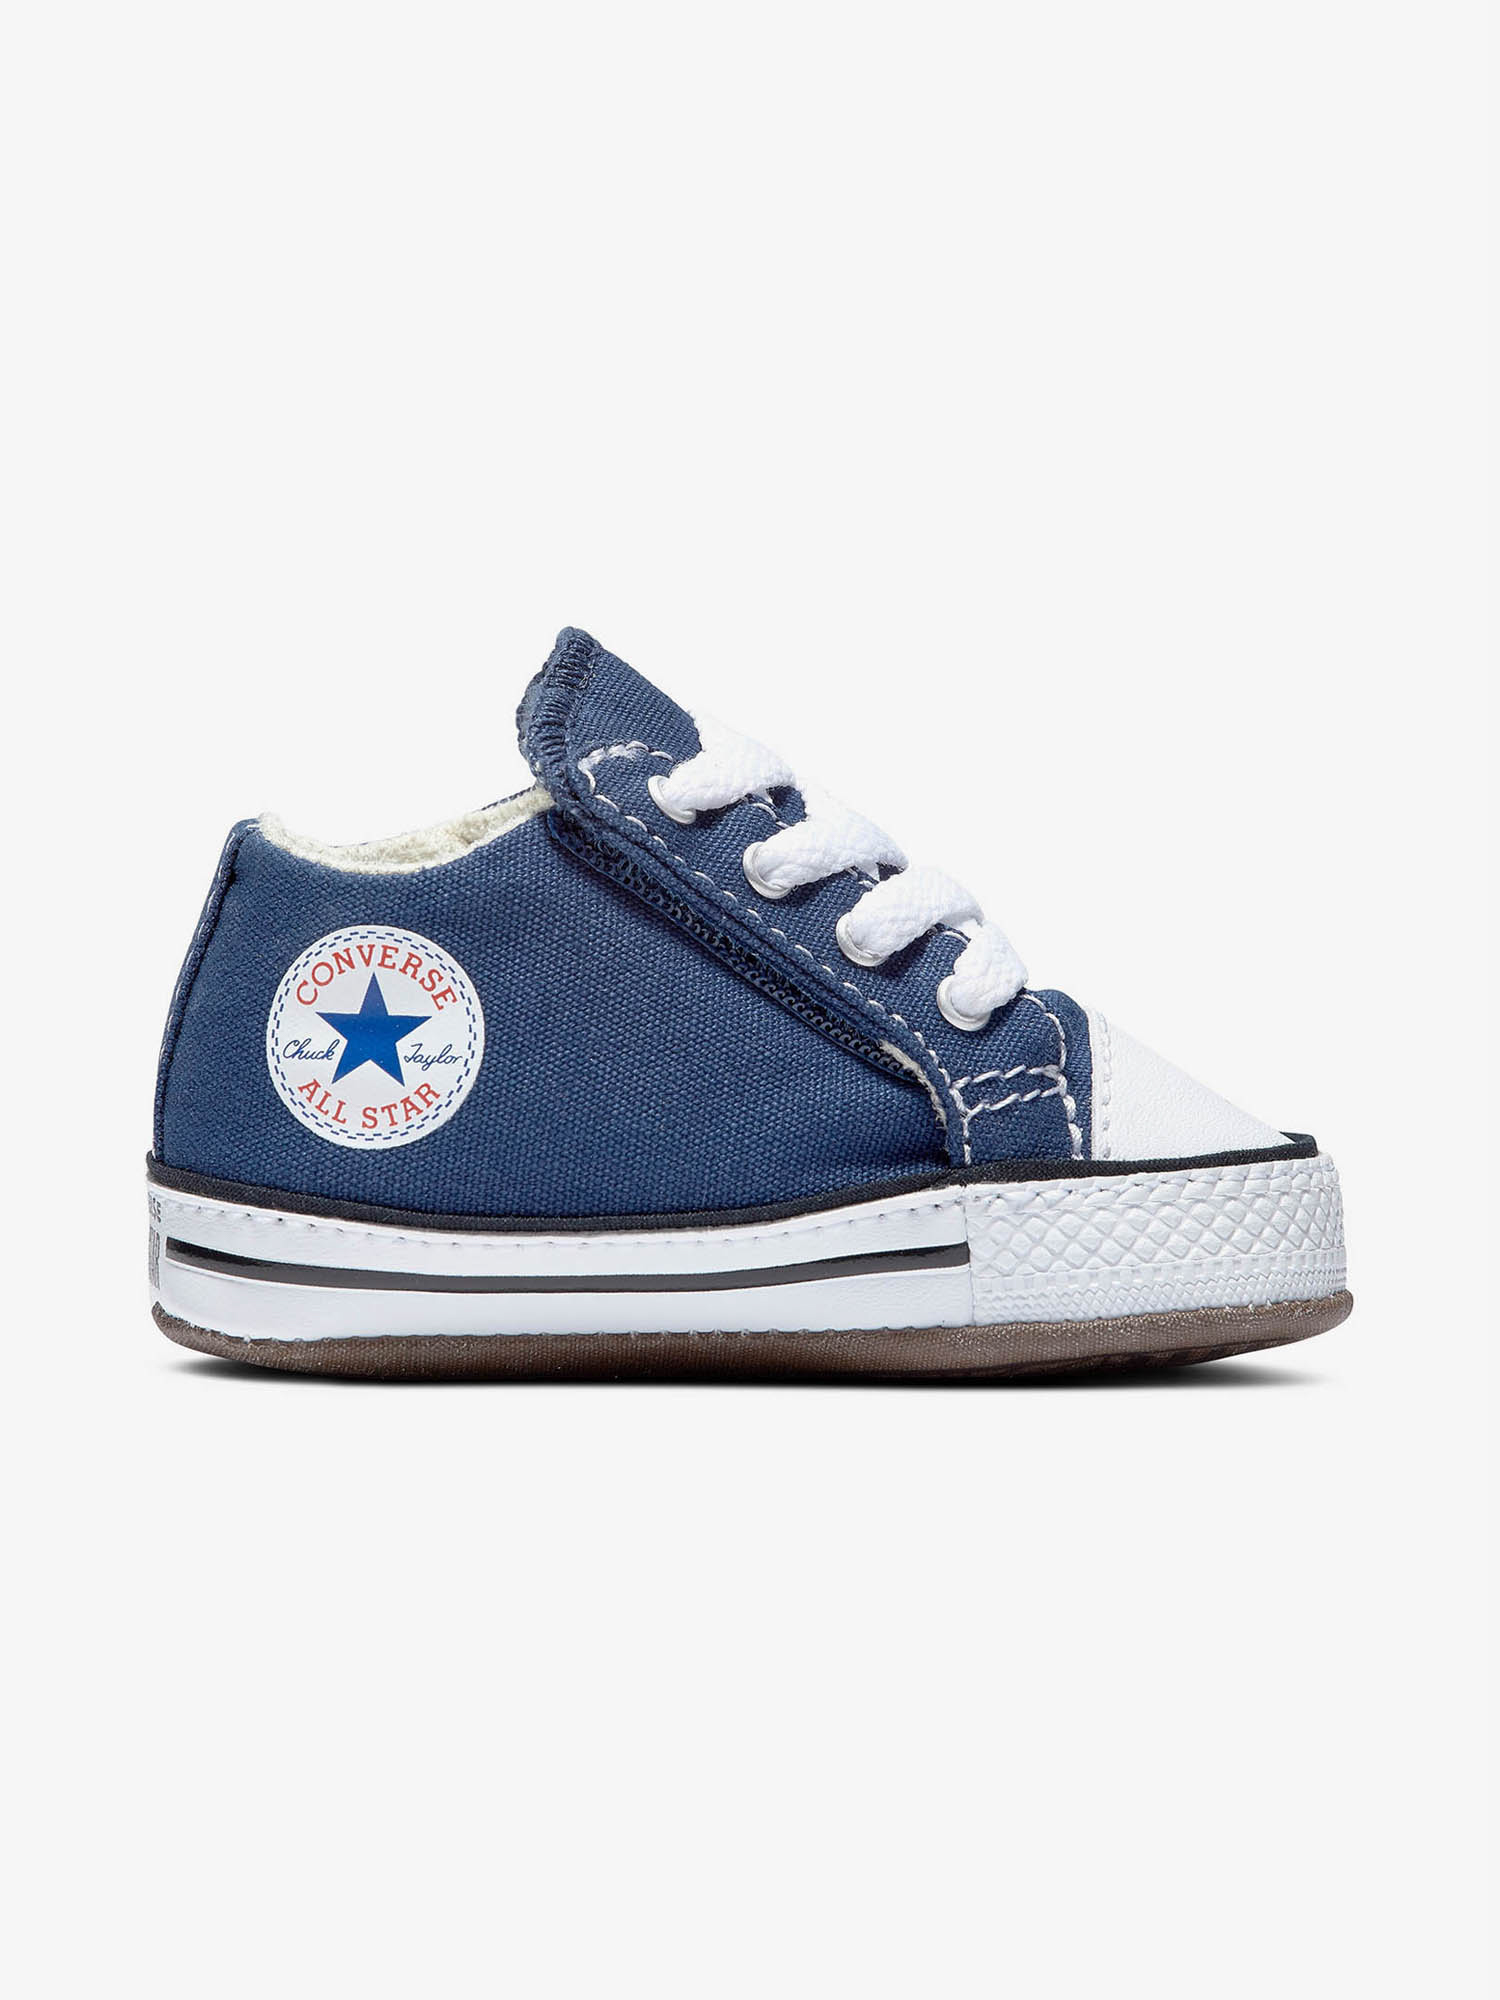 Topánky Converse Chuck Taylor All Star Cribster Mid (1)